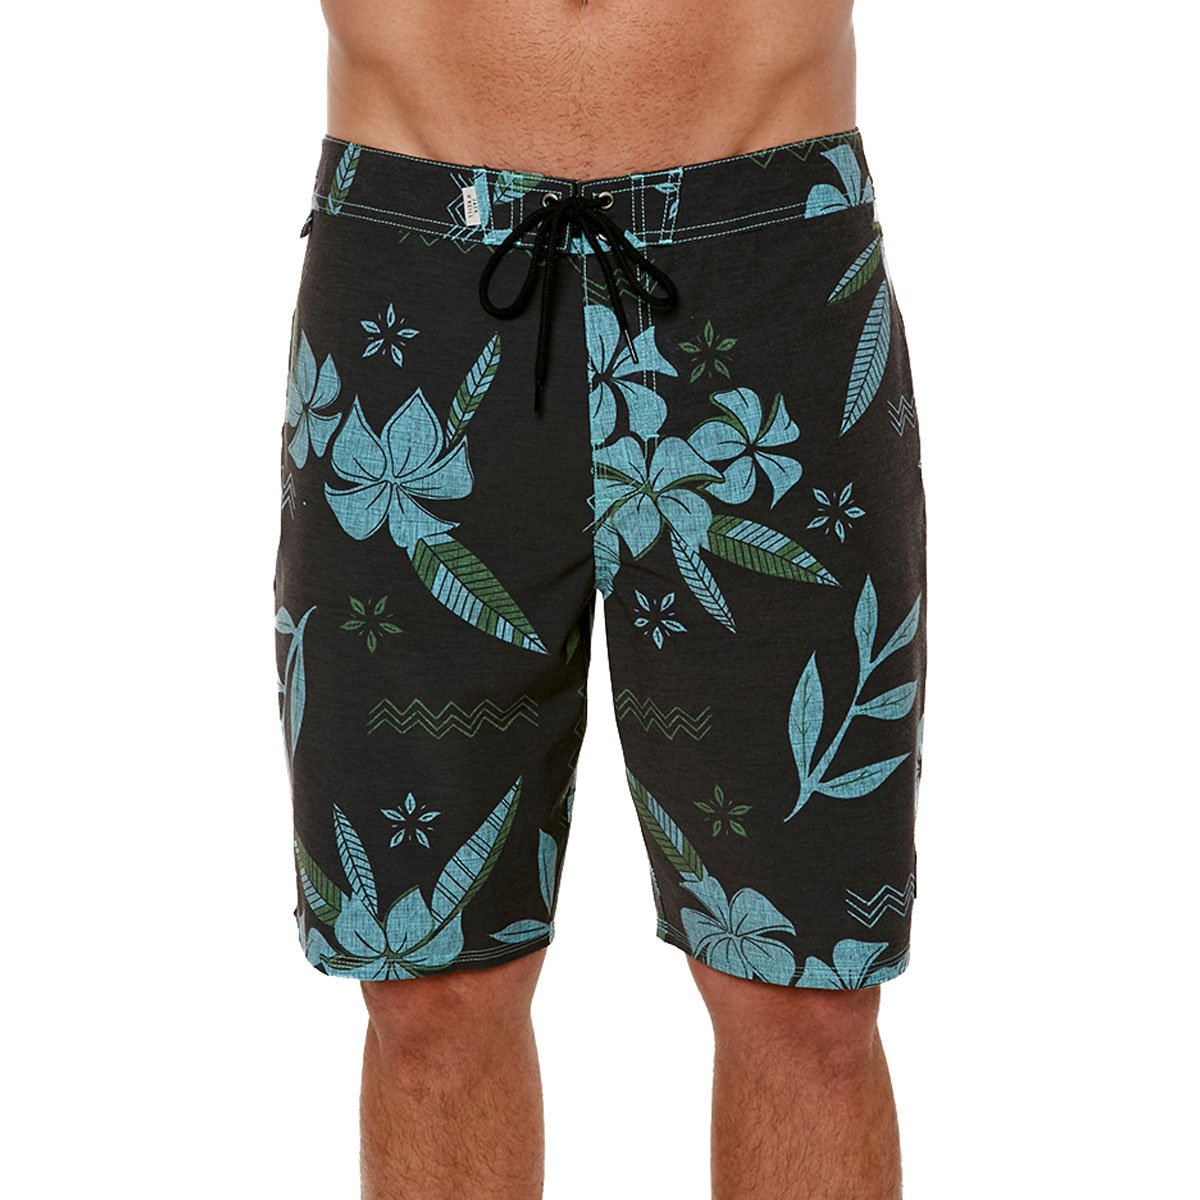 O'Neill Men's Jack Maui Boardshorts,38,Black